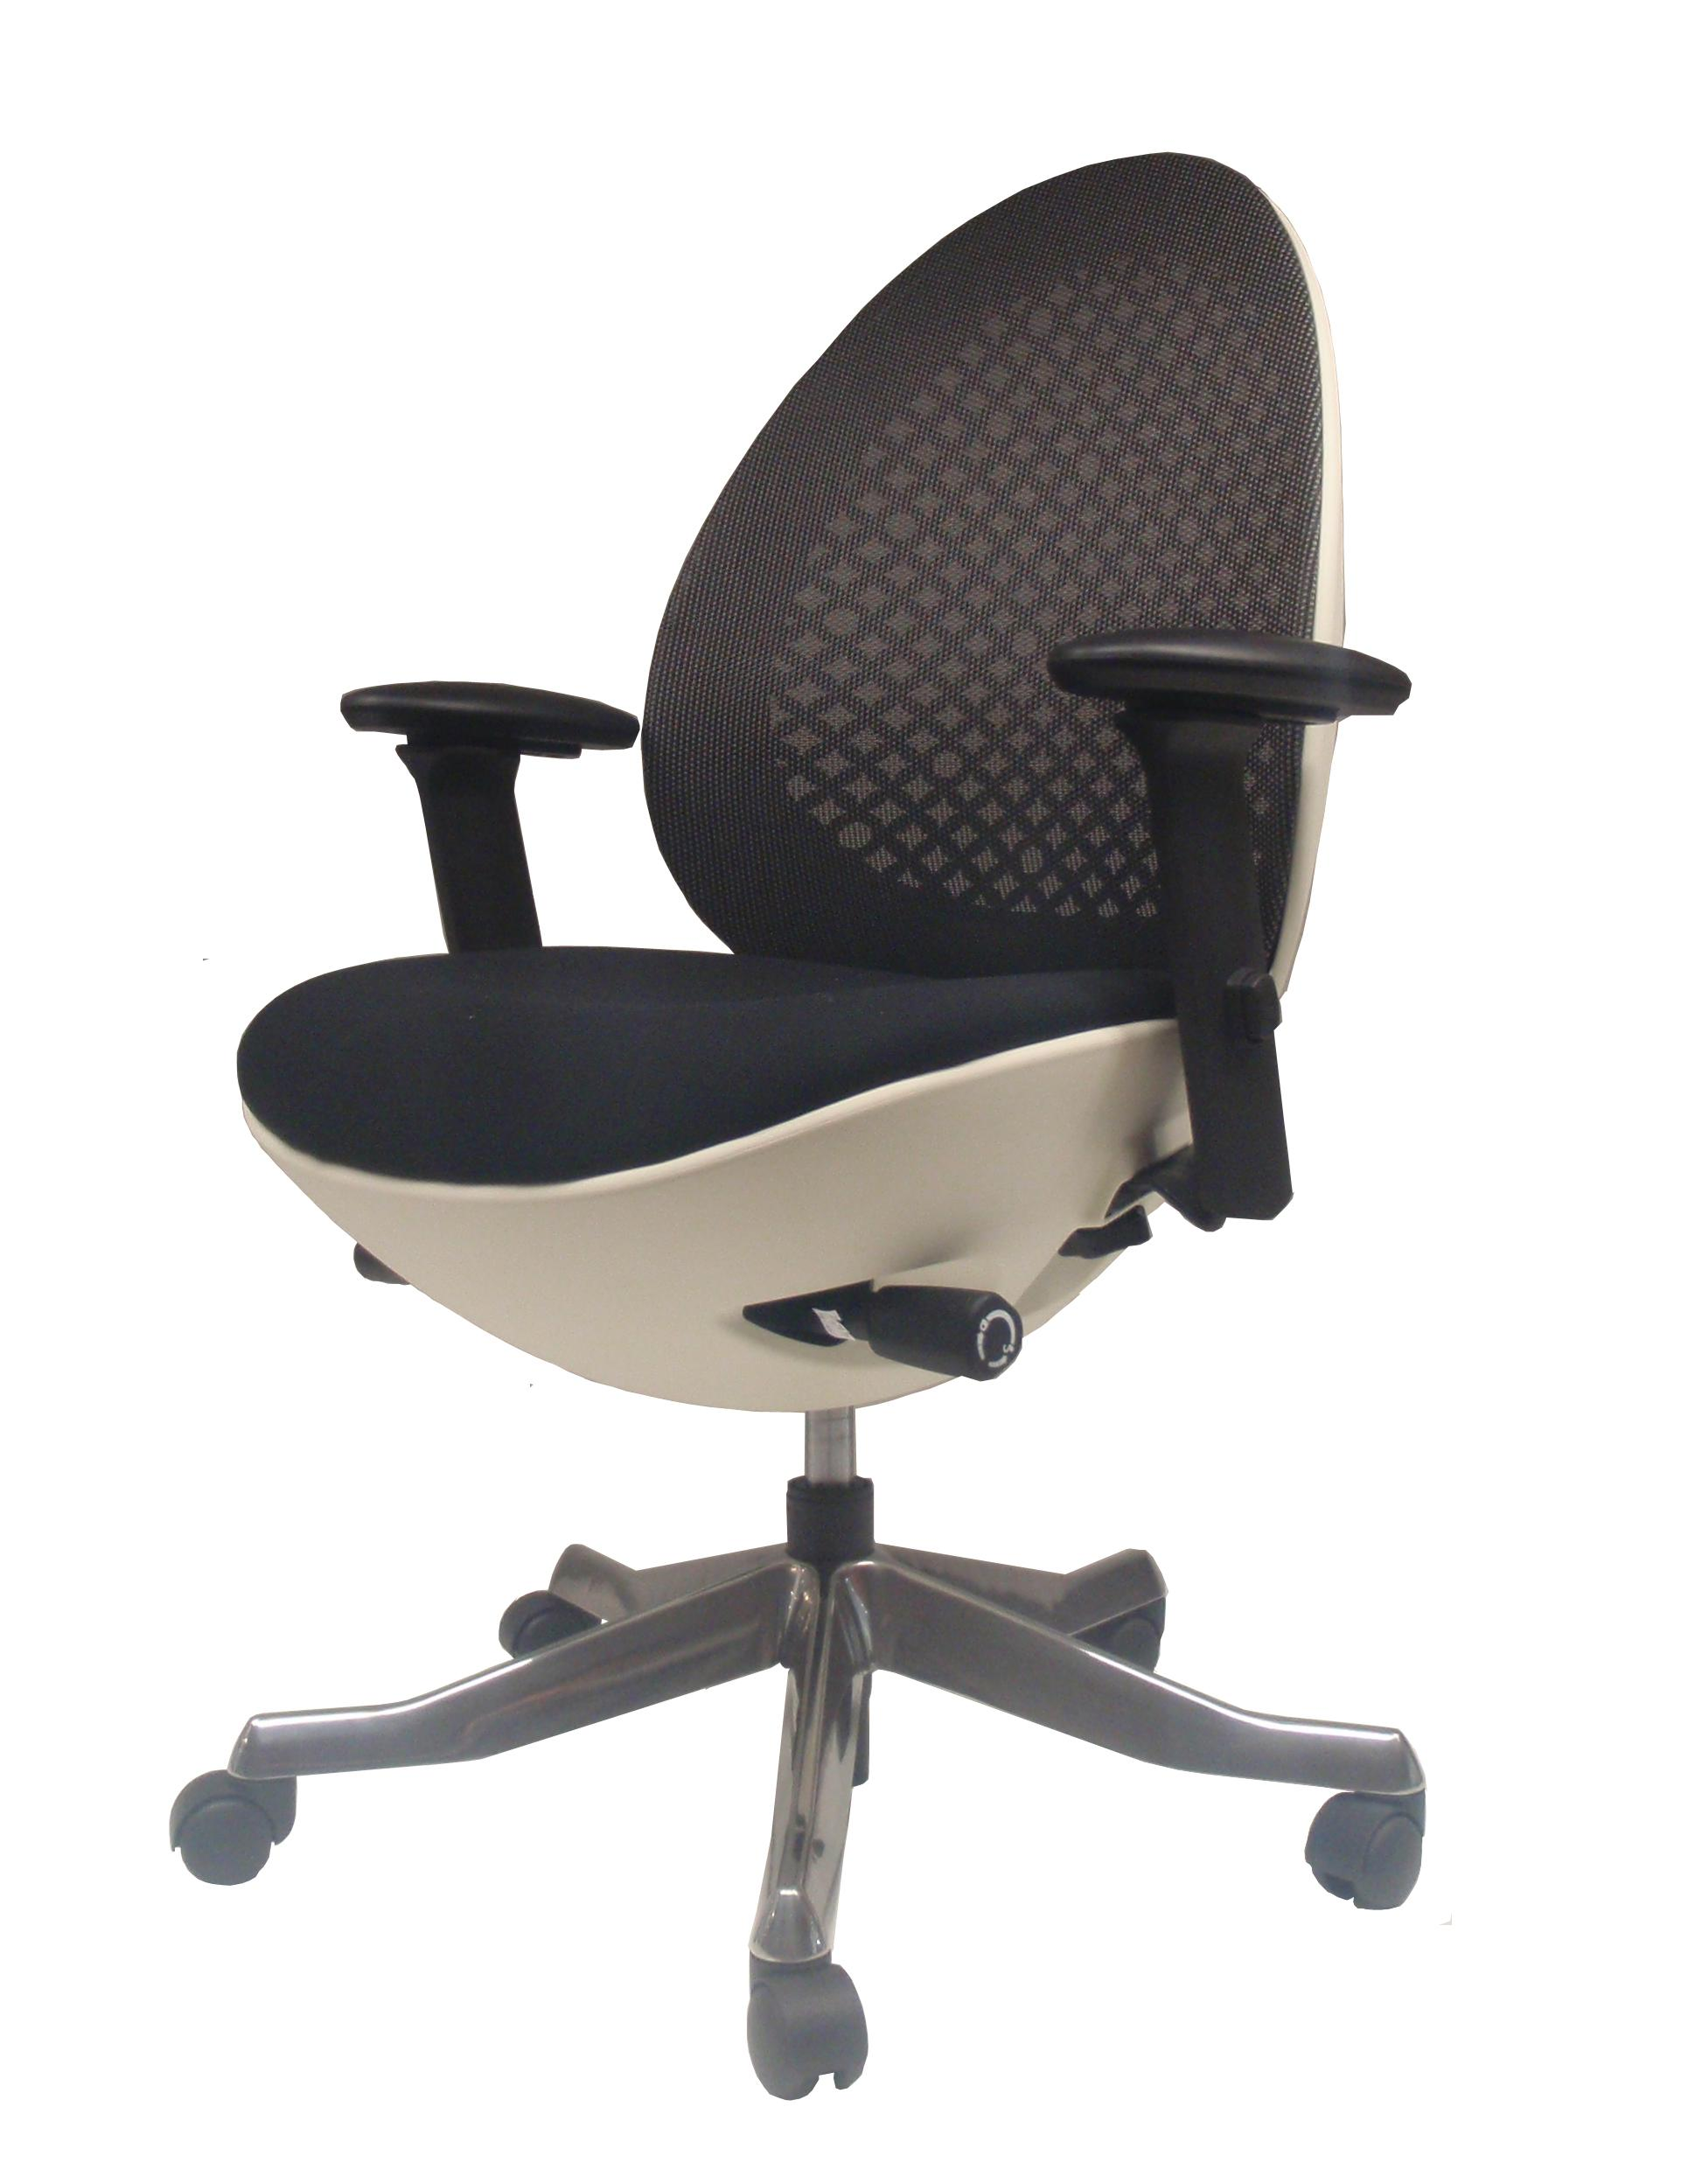 Unusual Office Chairs Ergonomic Recliner Office Chair Unique Design Office